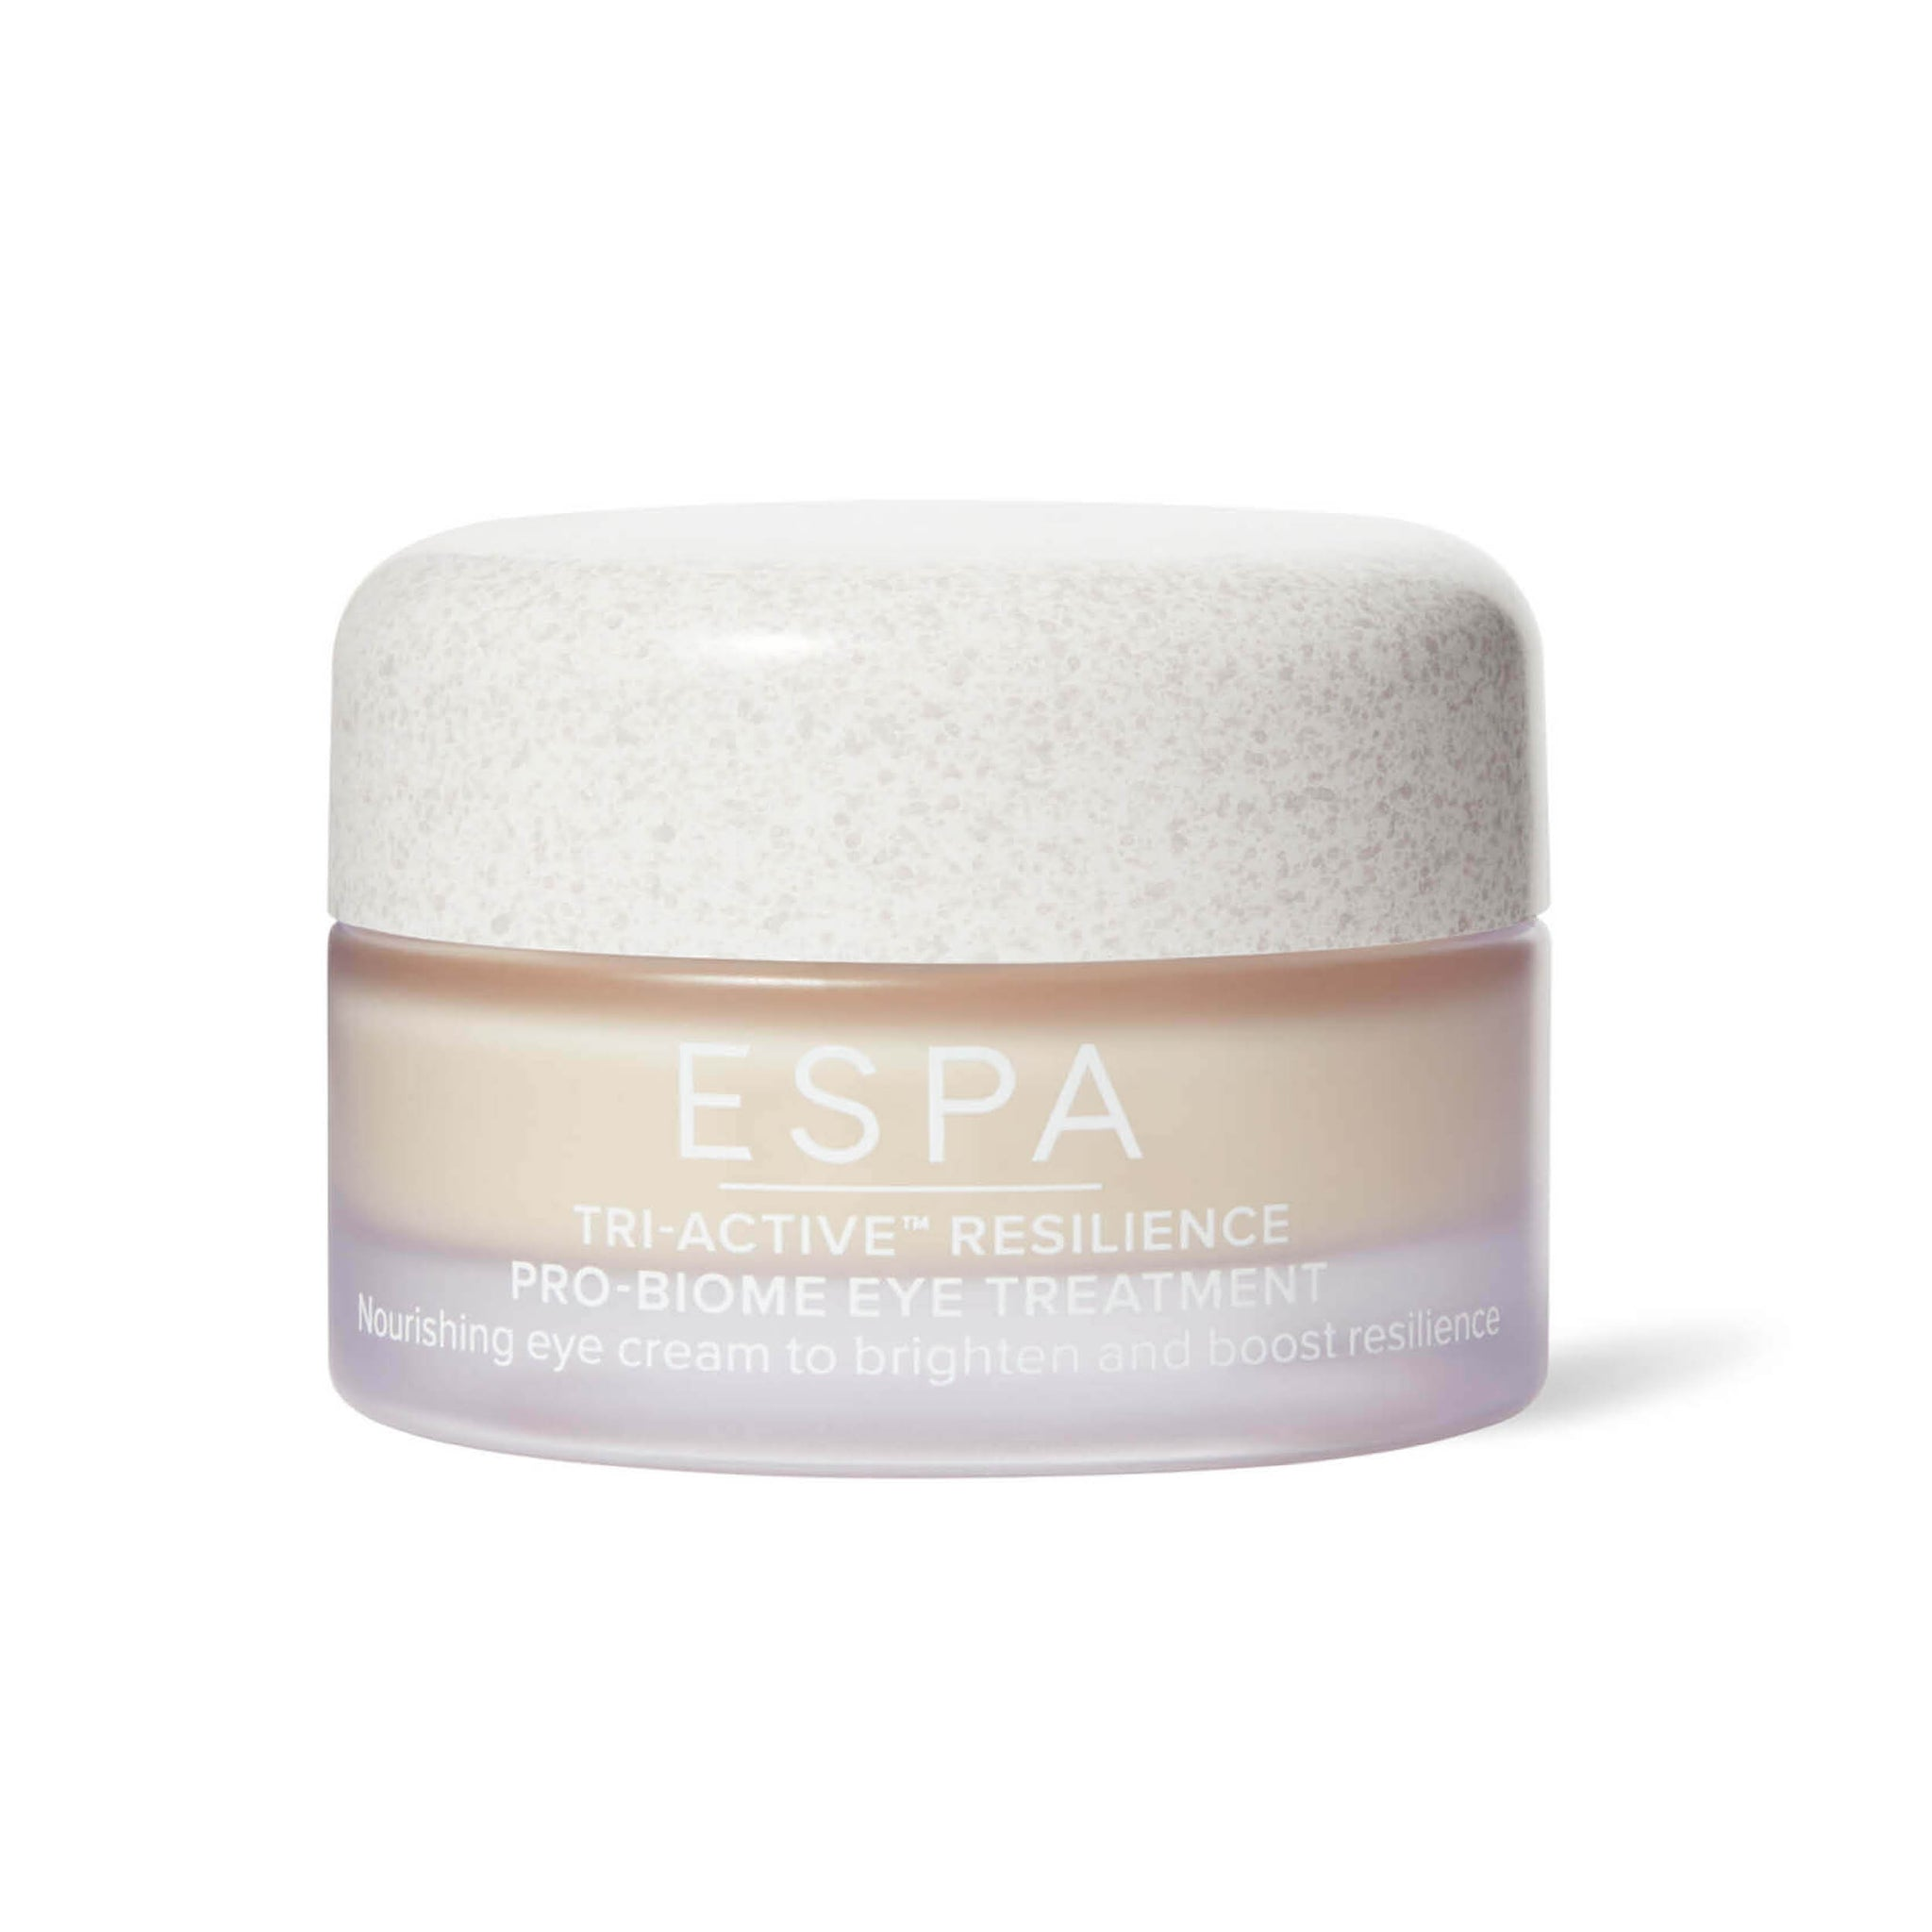 ESPA Tri-Active Resilience ProBiome Eye Treatment